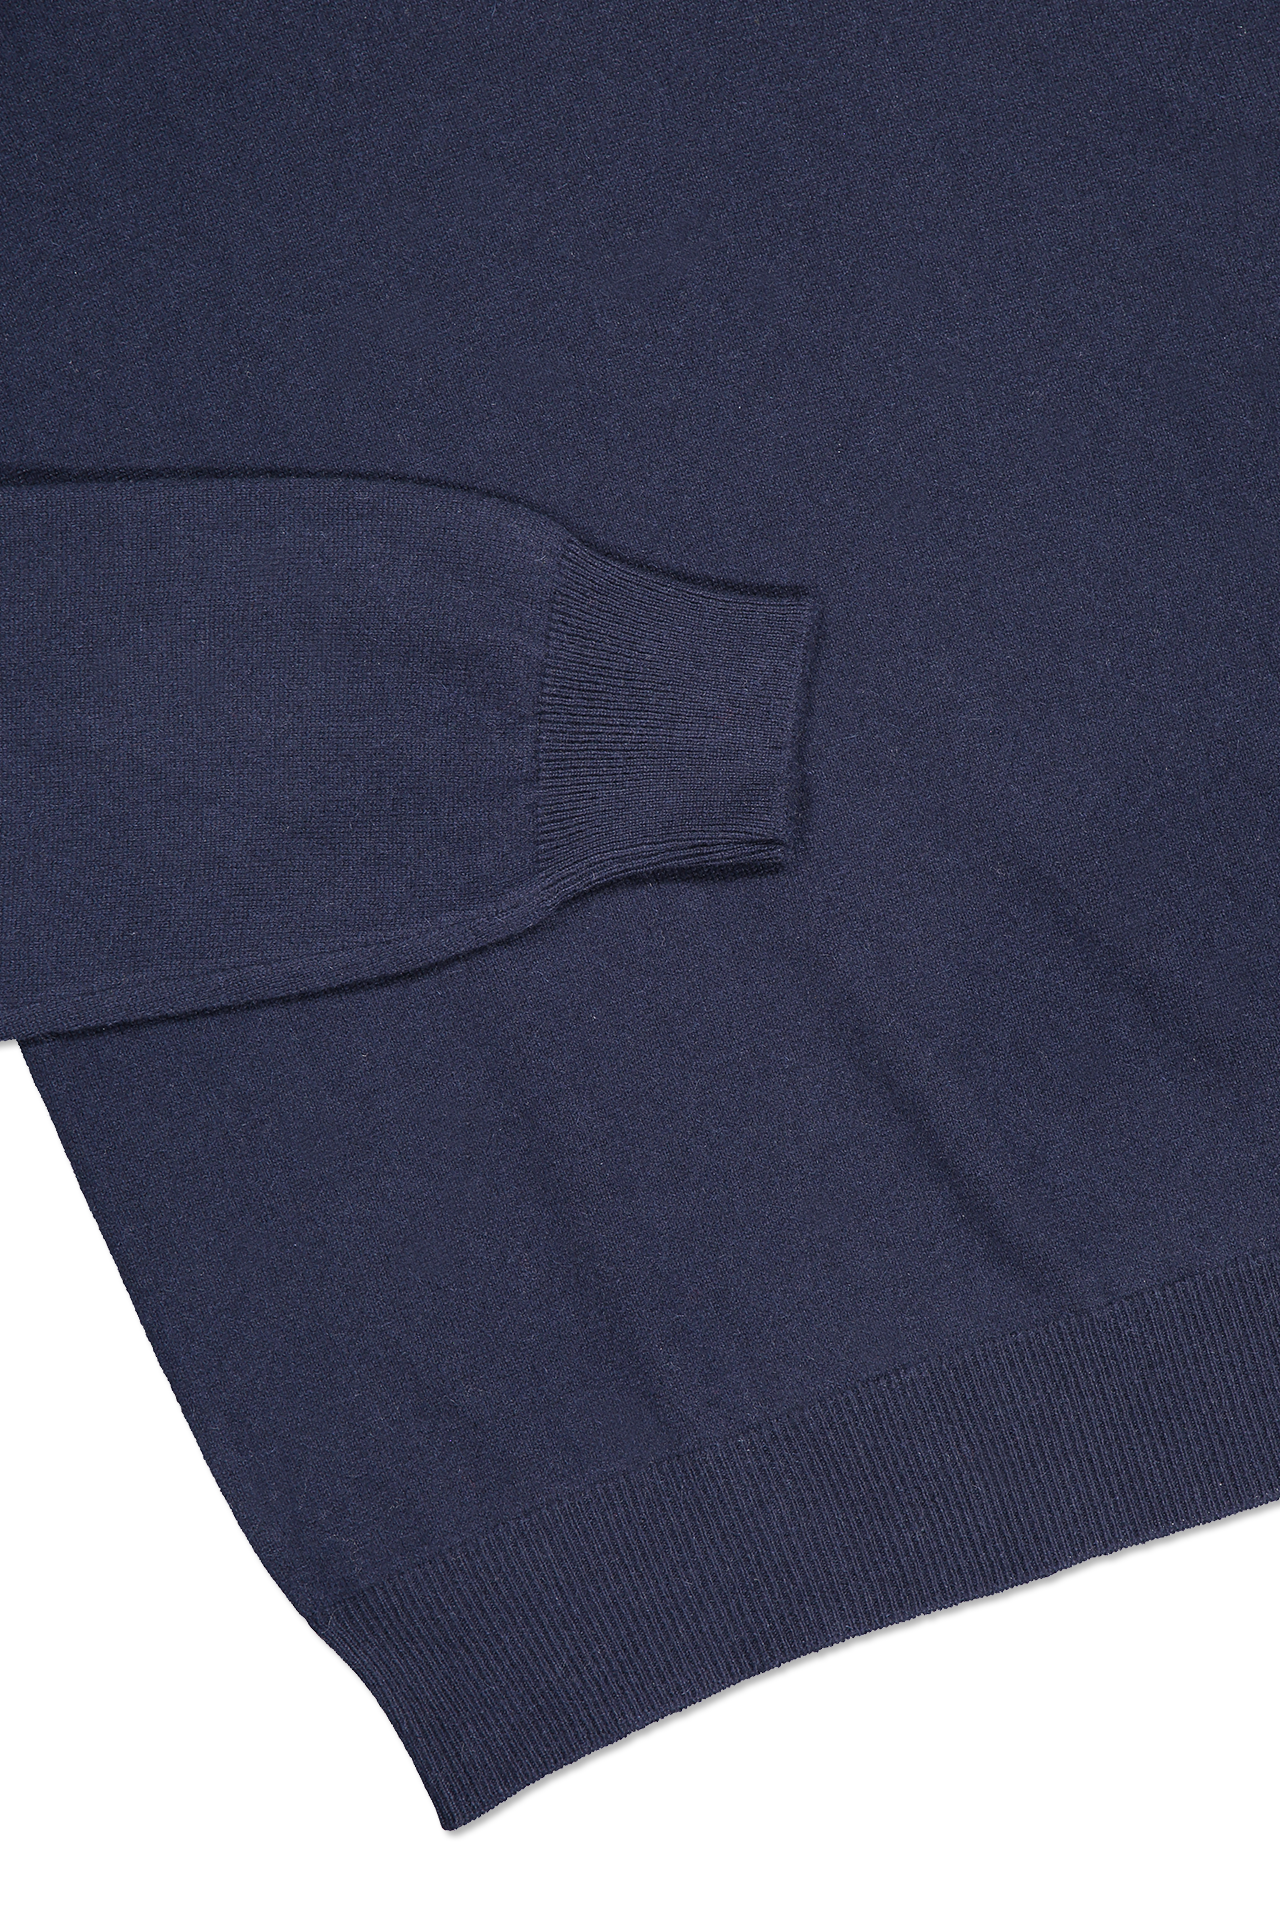 Hemline and cuff detail image of Gran Sasso Turtleneck Sweater Navy